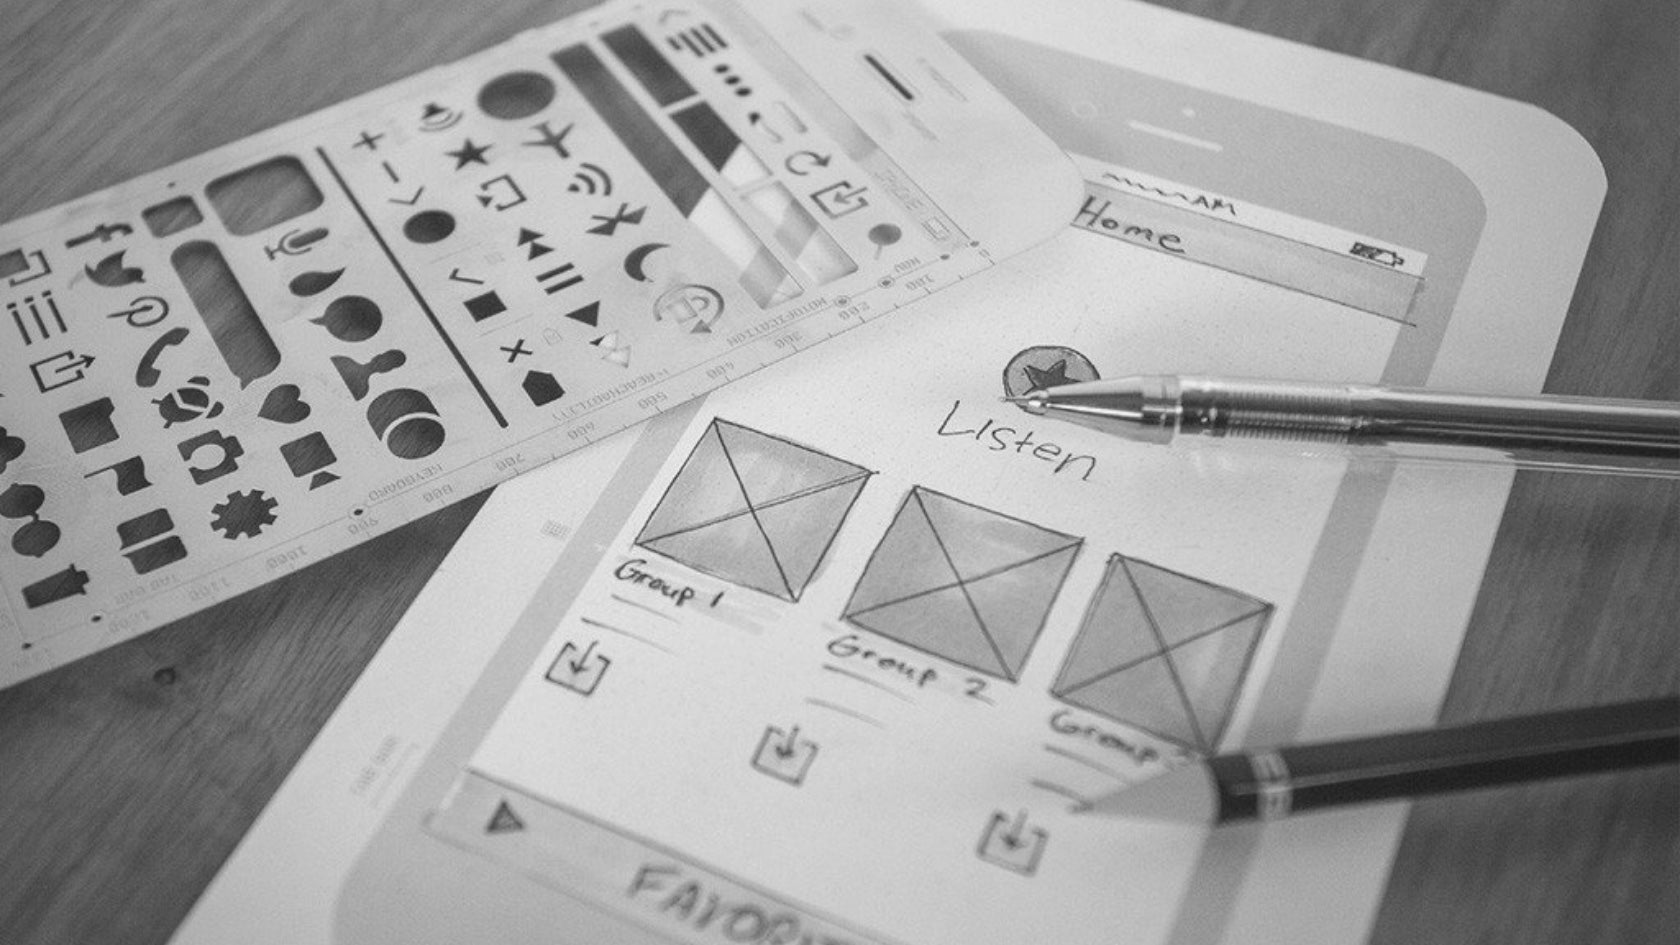 Sketching with UI stencils